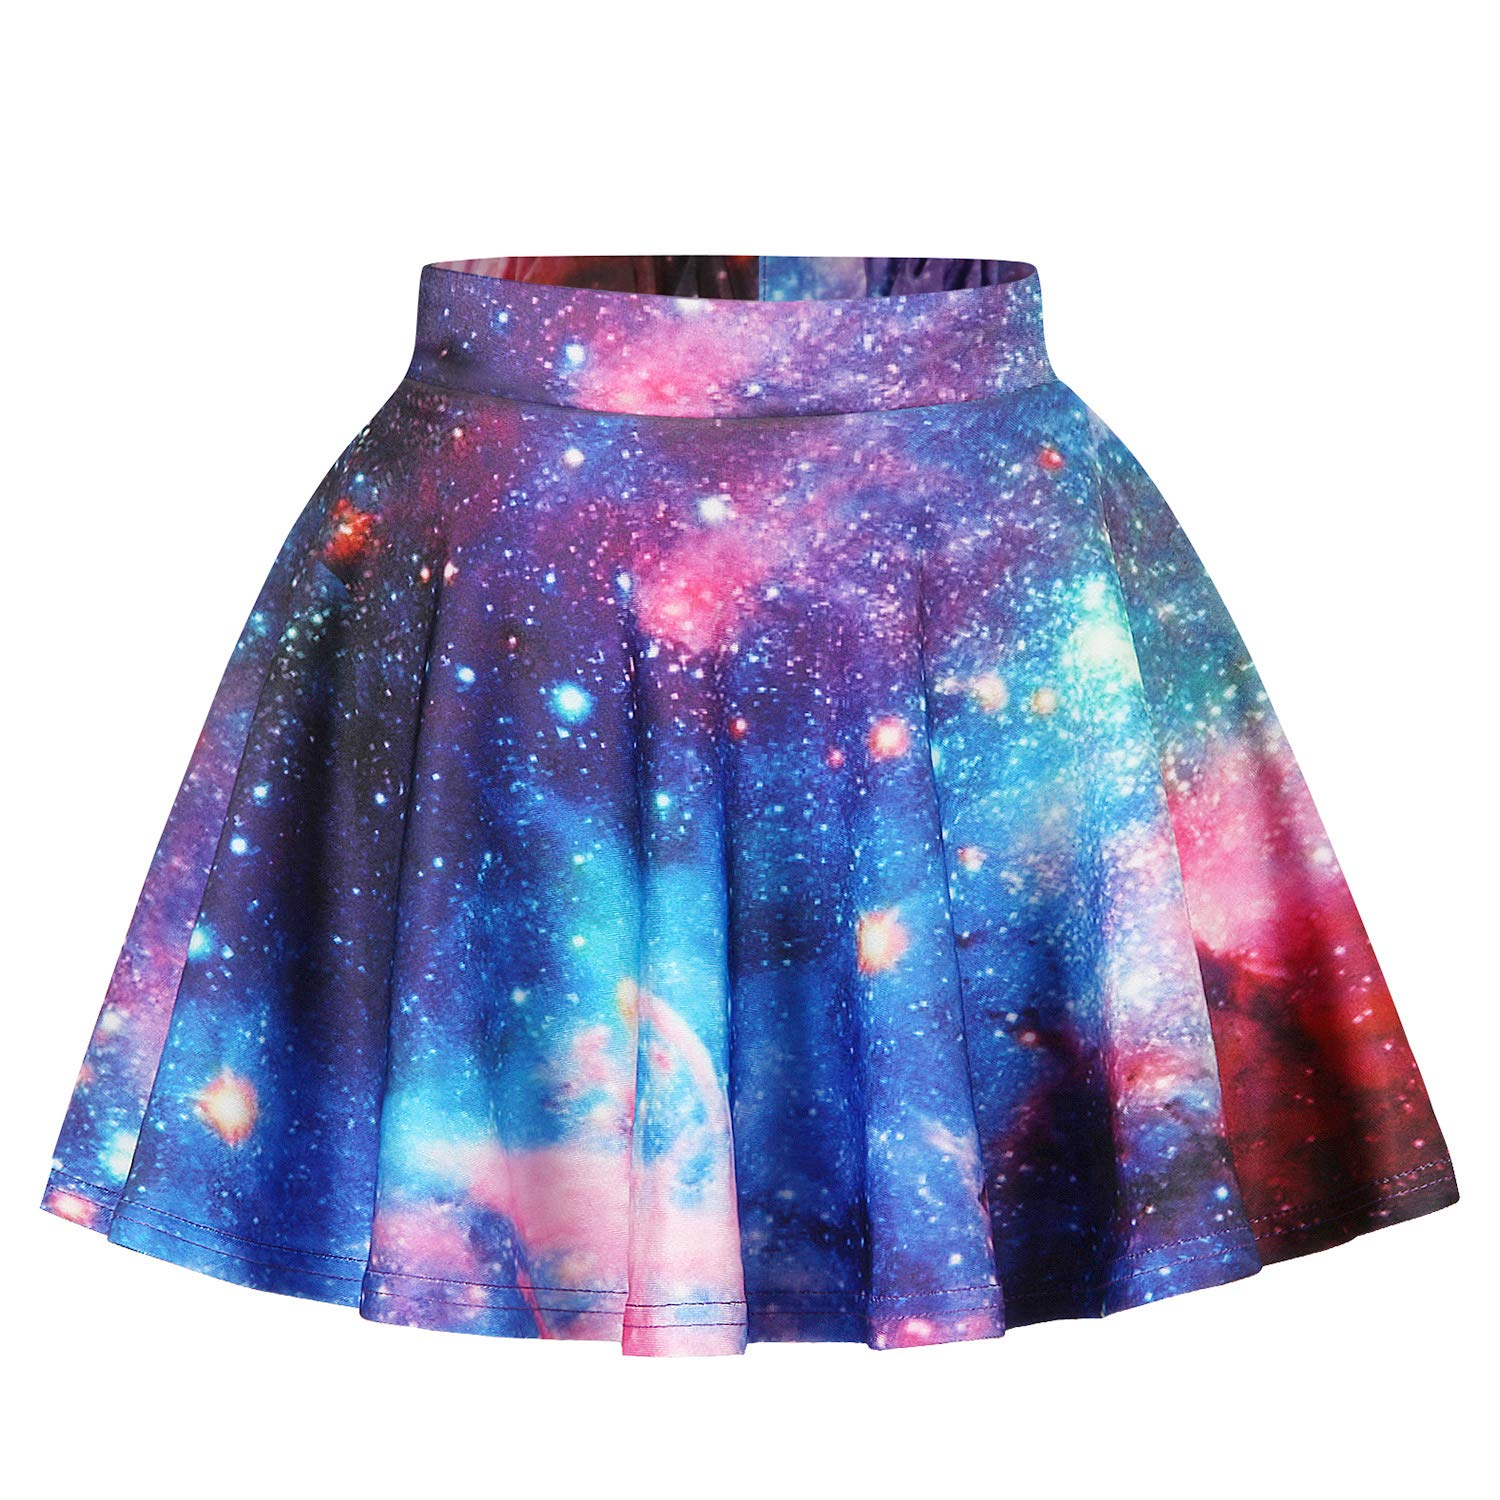 KIDVOVOU Girls 3D Galaxy Van Gogh Print Pleated A-line Skater Mini Skirt Age 8-13 Years